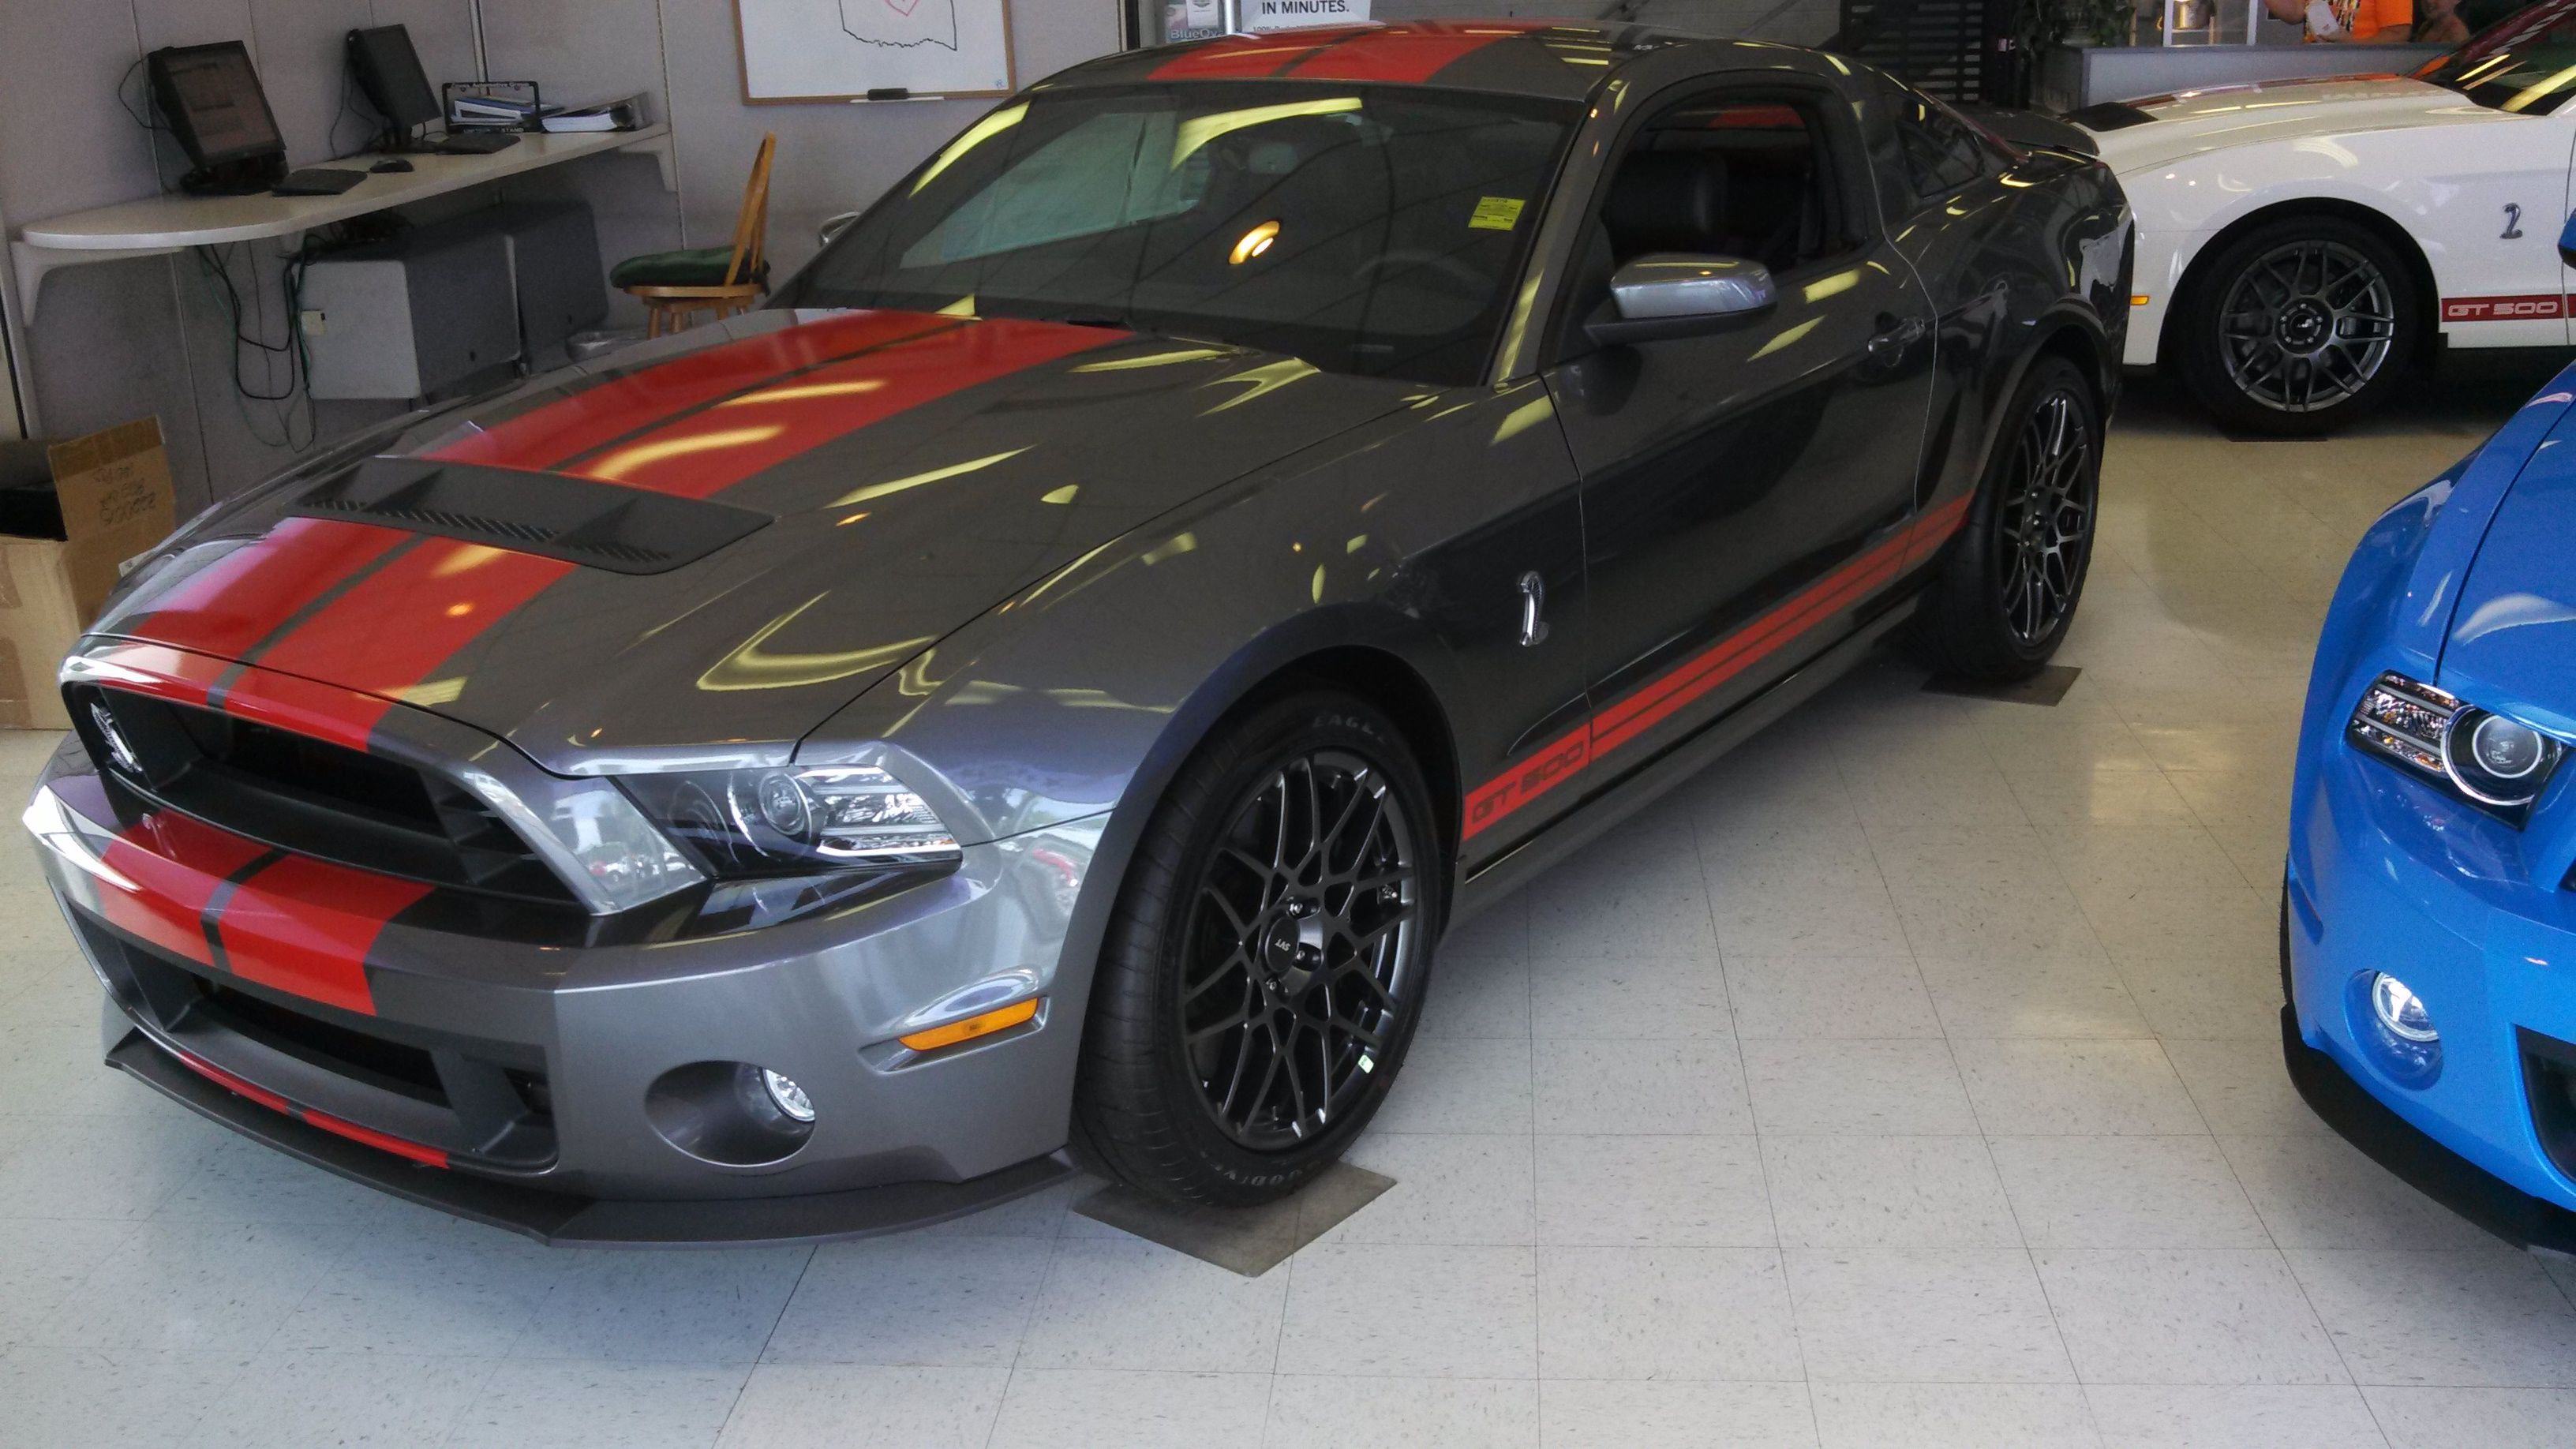 2014 ford mustang shelby gt 500 with a 5 8l v8 engine paired to a 2 3